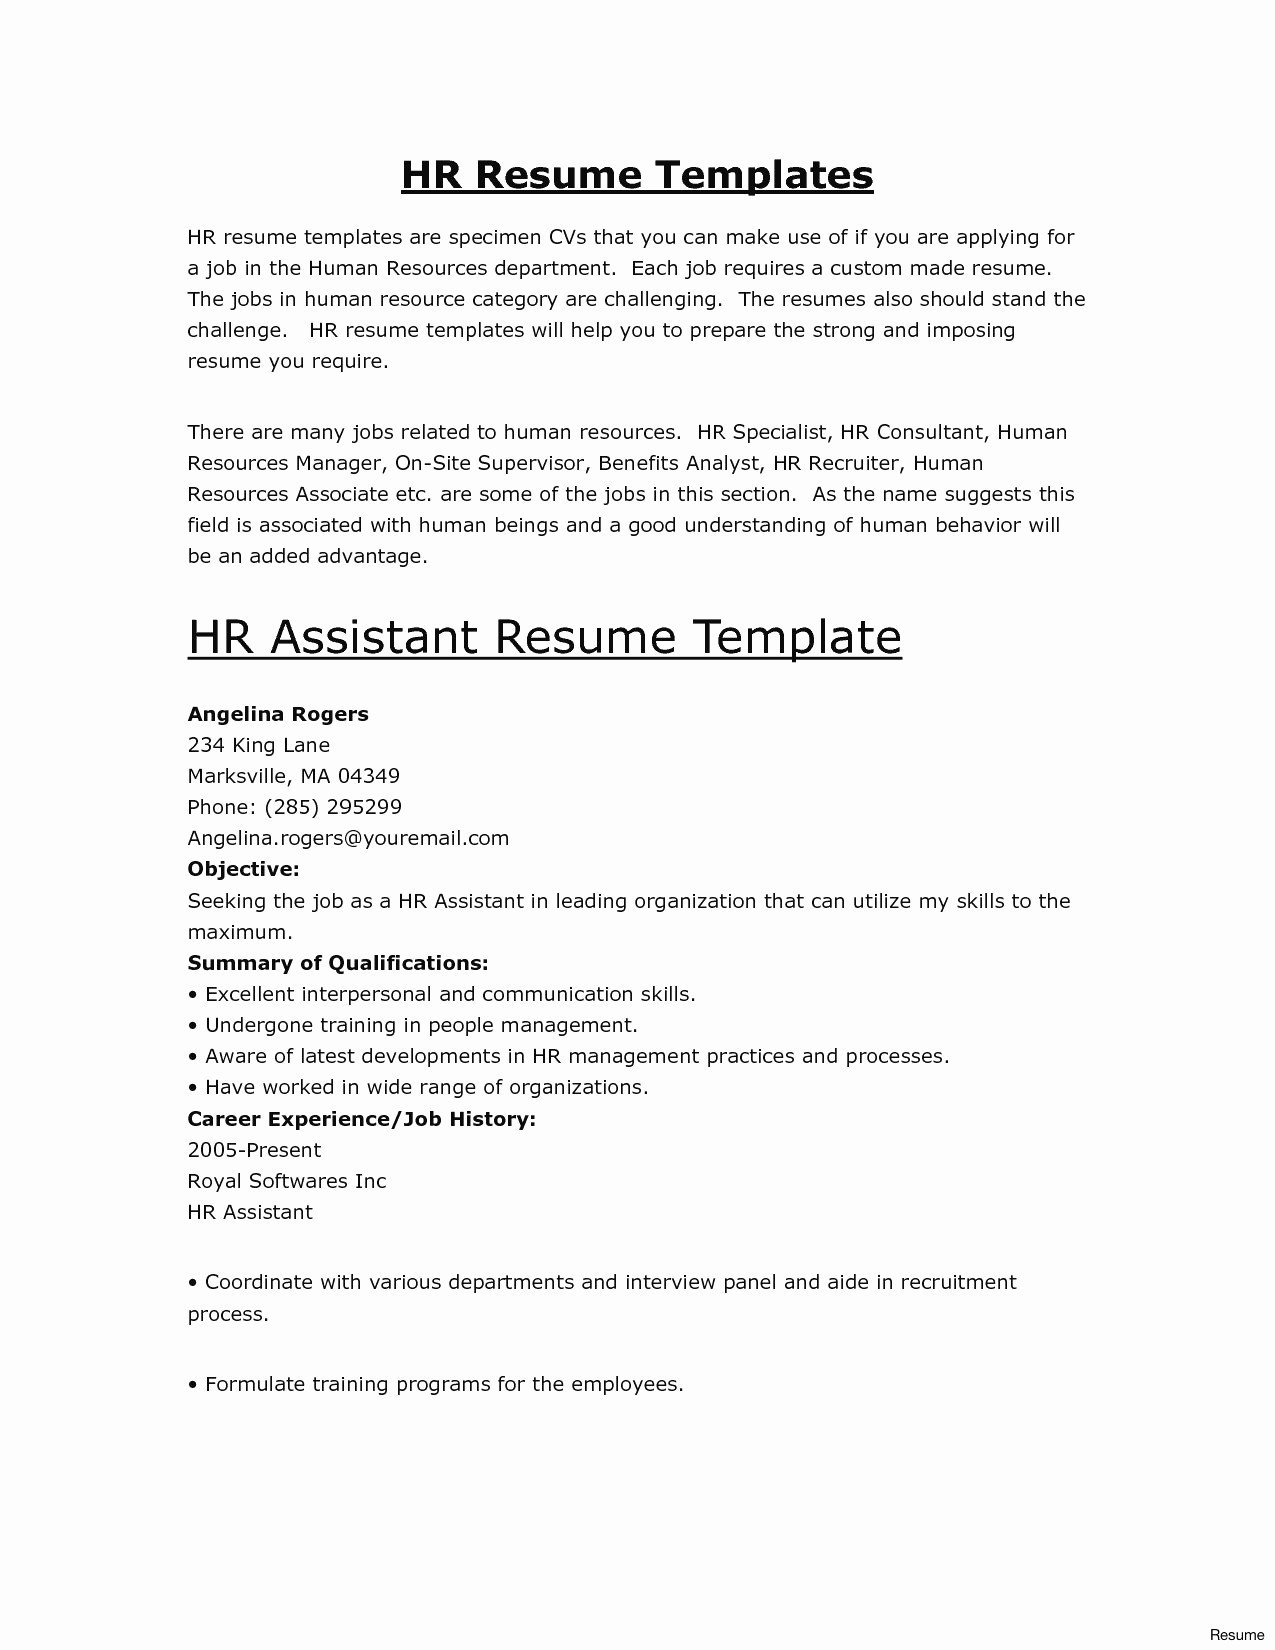 Proof Of Employment Letter Template Word - Inspirational Employment Verification Letter Template